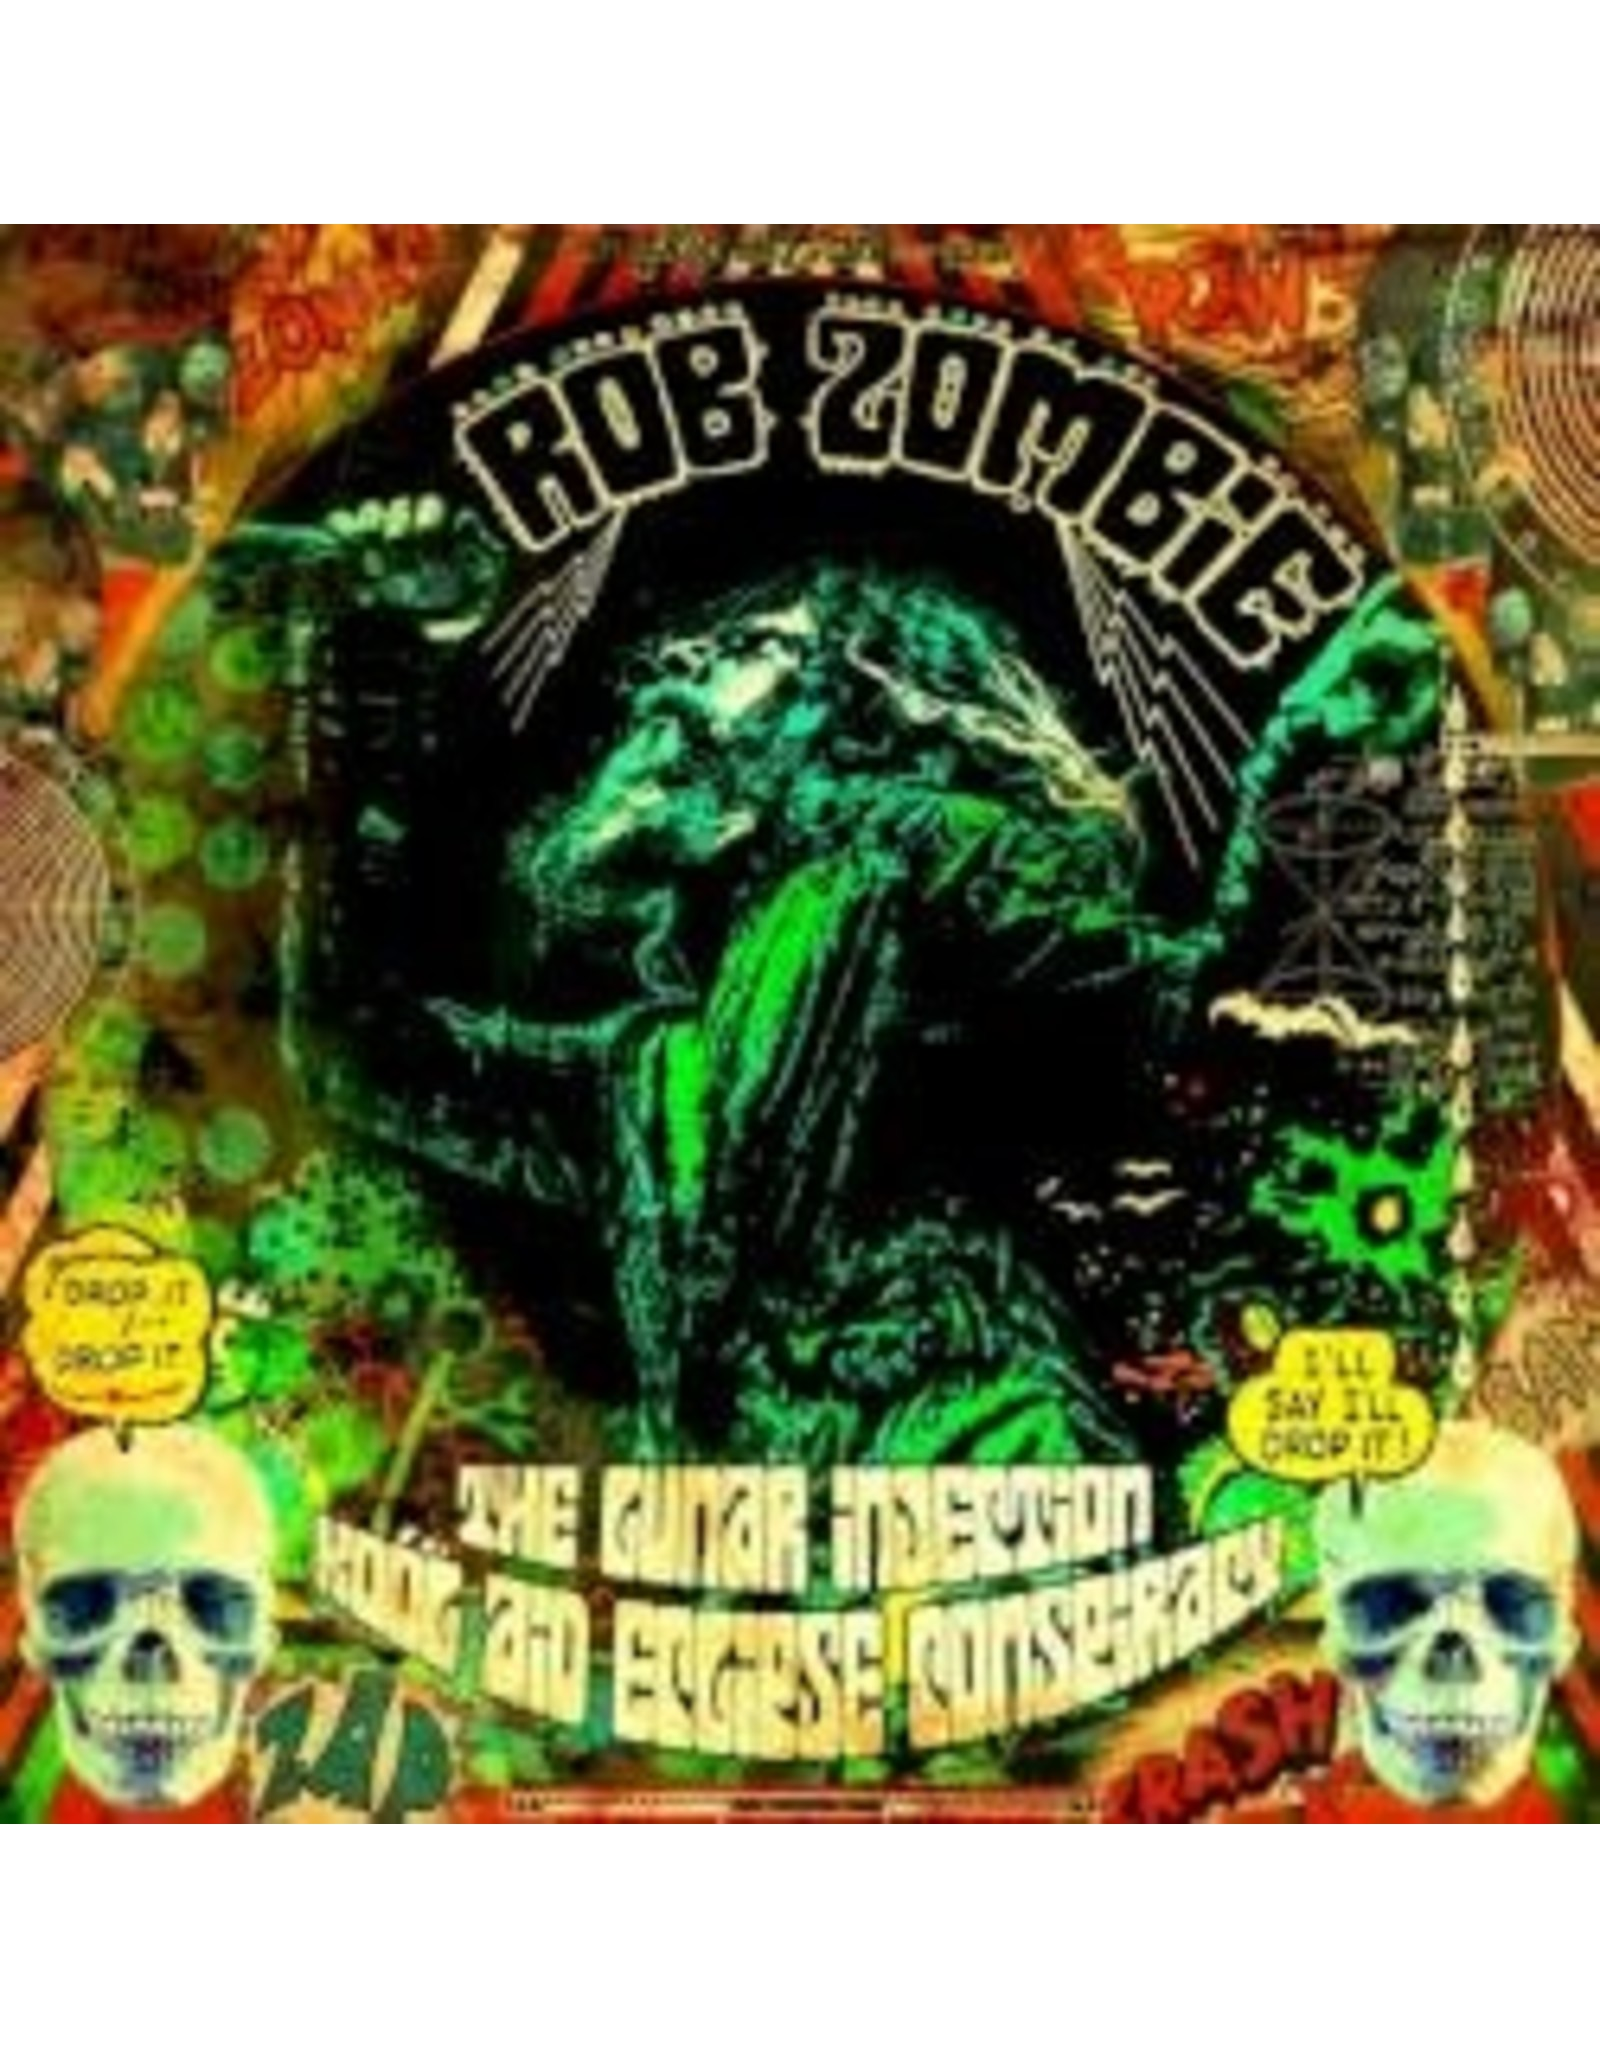 Zombie, Rob - The Lunar Injection Kool Aid Eclipse Conspiracy LP (red/white/black splatter)